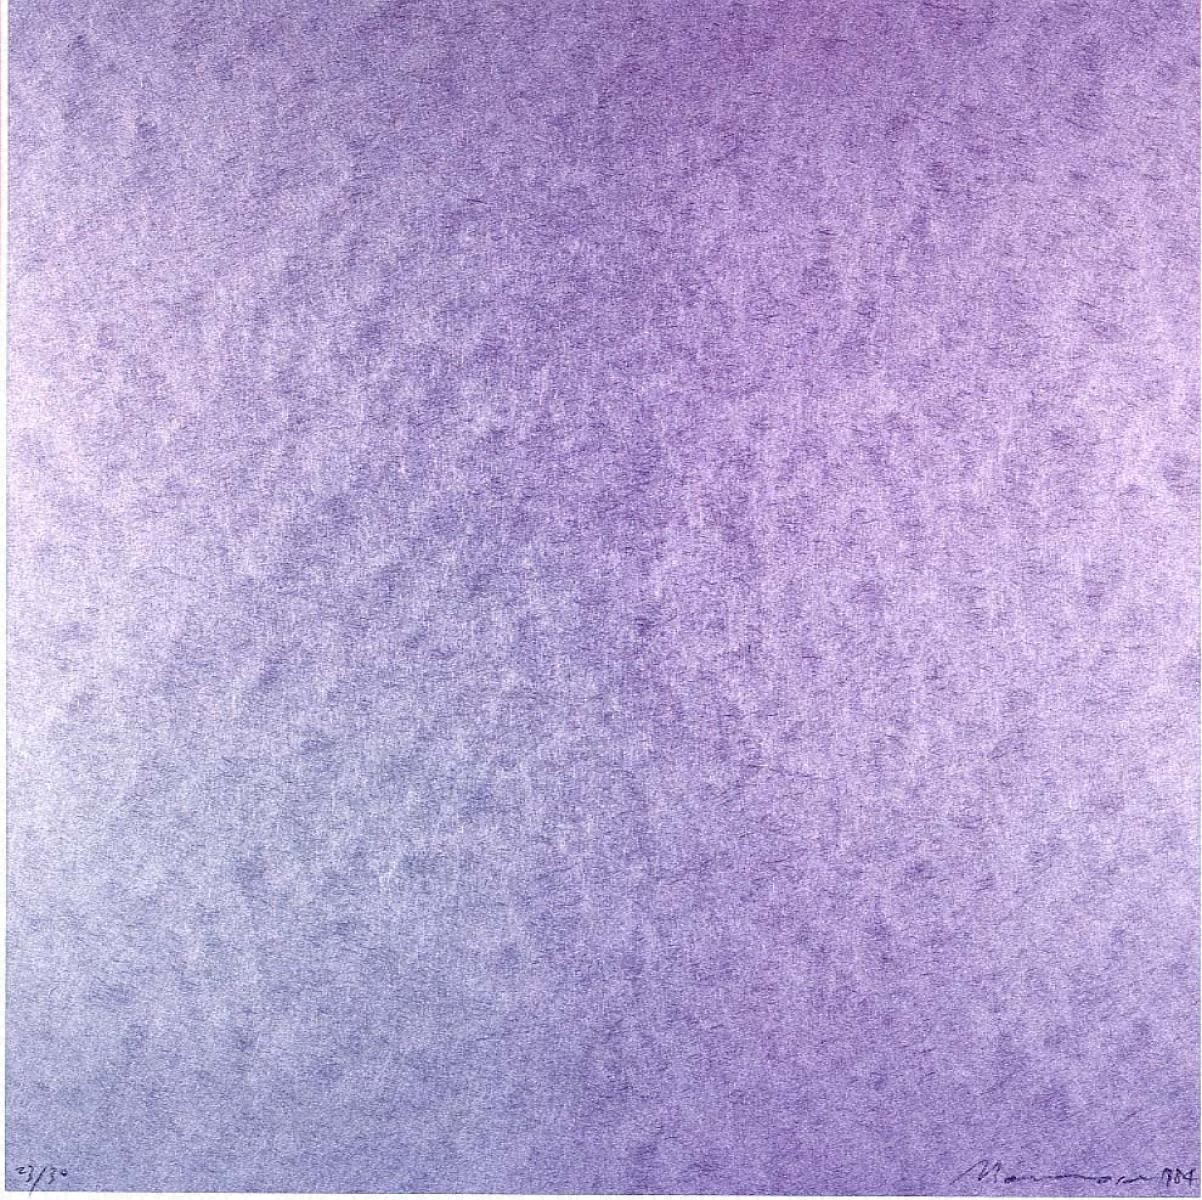 Square-Metallic Green and Violet